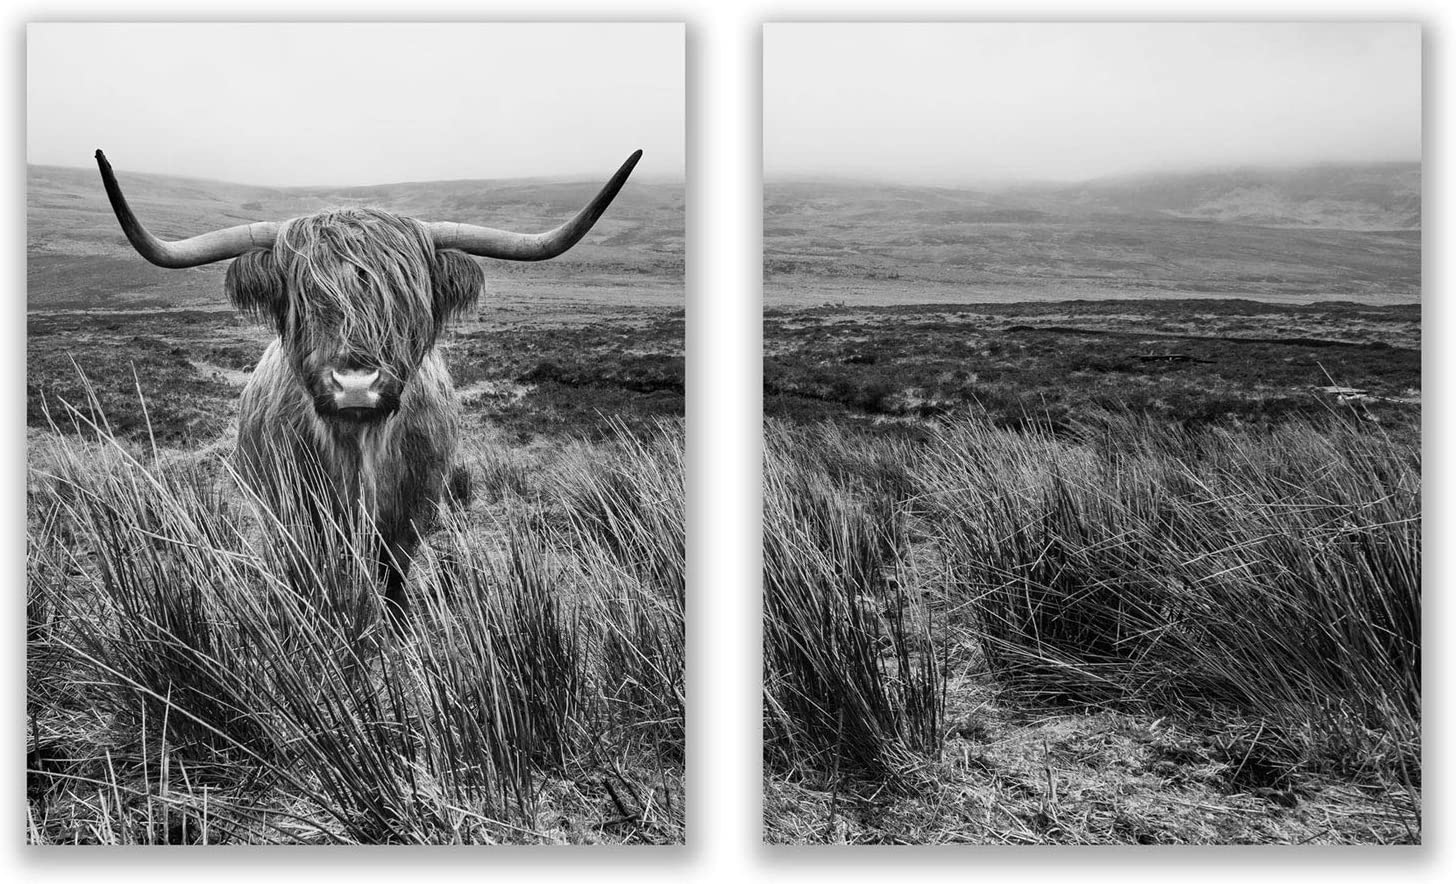 Highland Cow Prints - Set of 2 (8x10) Glossy Farm Wall Art Decor - Black and White Farmhouse Shaggy Scottish Barn Cow Photography